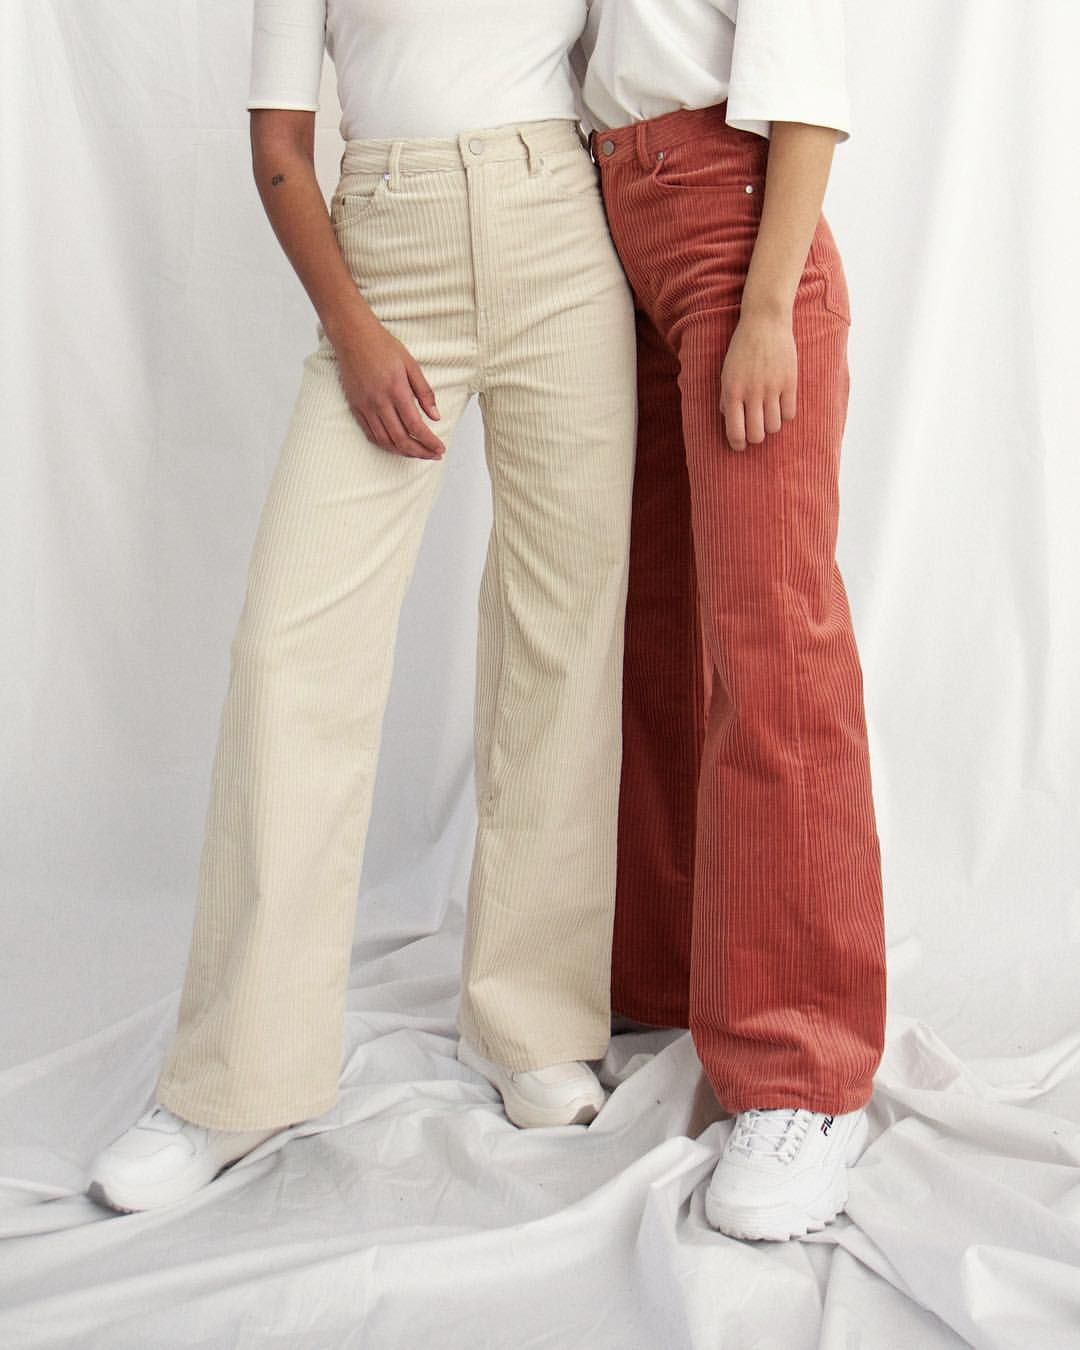 ff13f6536a9b Hellooo Ace corduroy trousers! Now available at weekday.com🔥